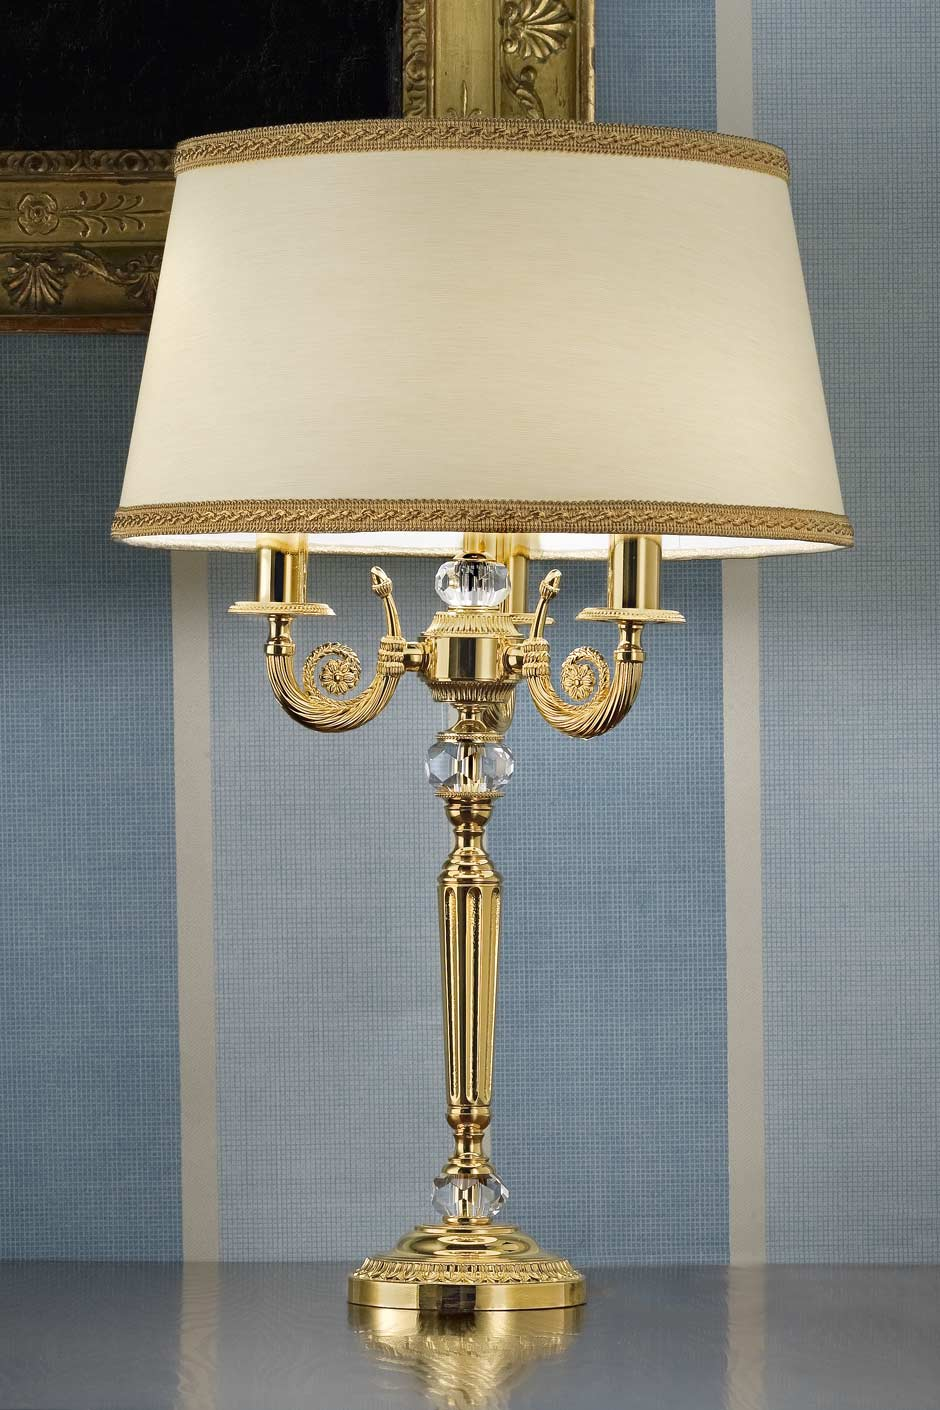 Gold Plated Metal Table Lamp With Crystal Details Masiero